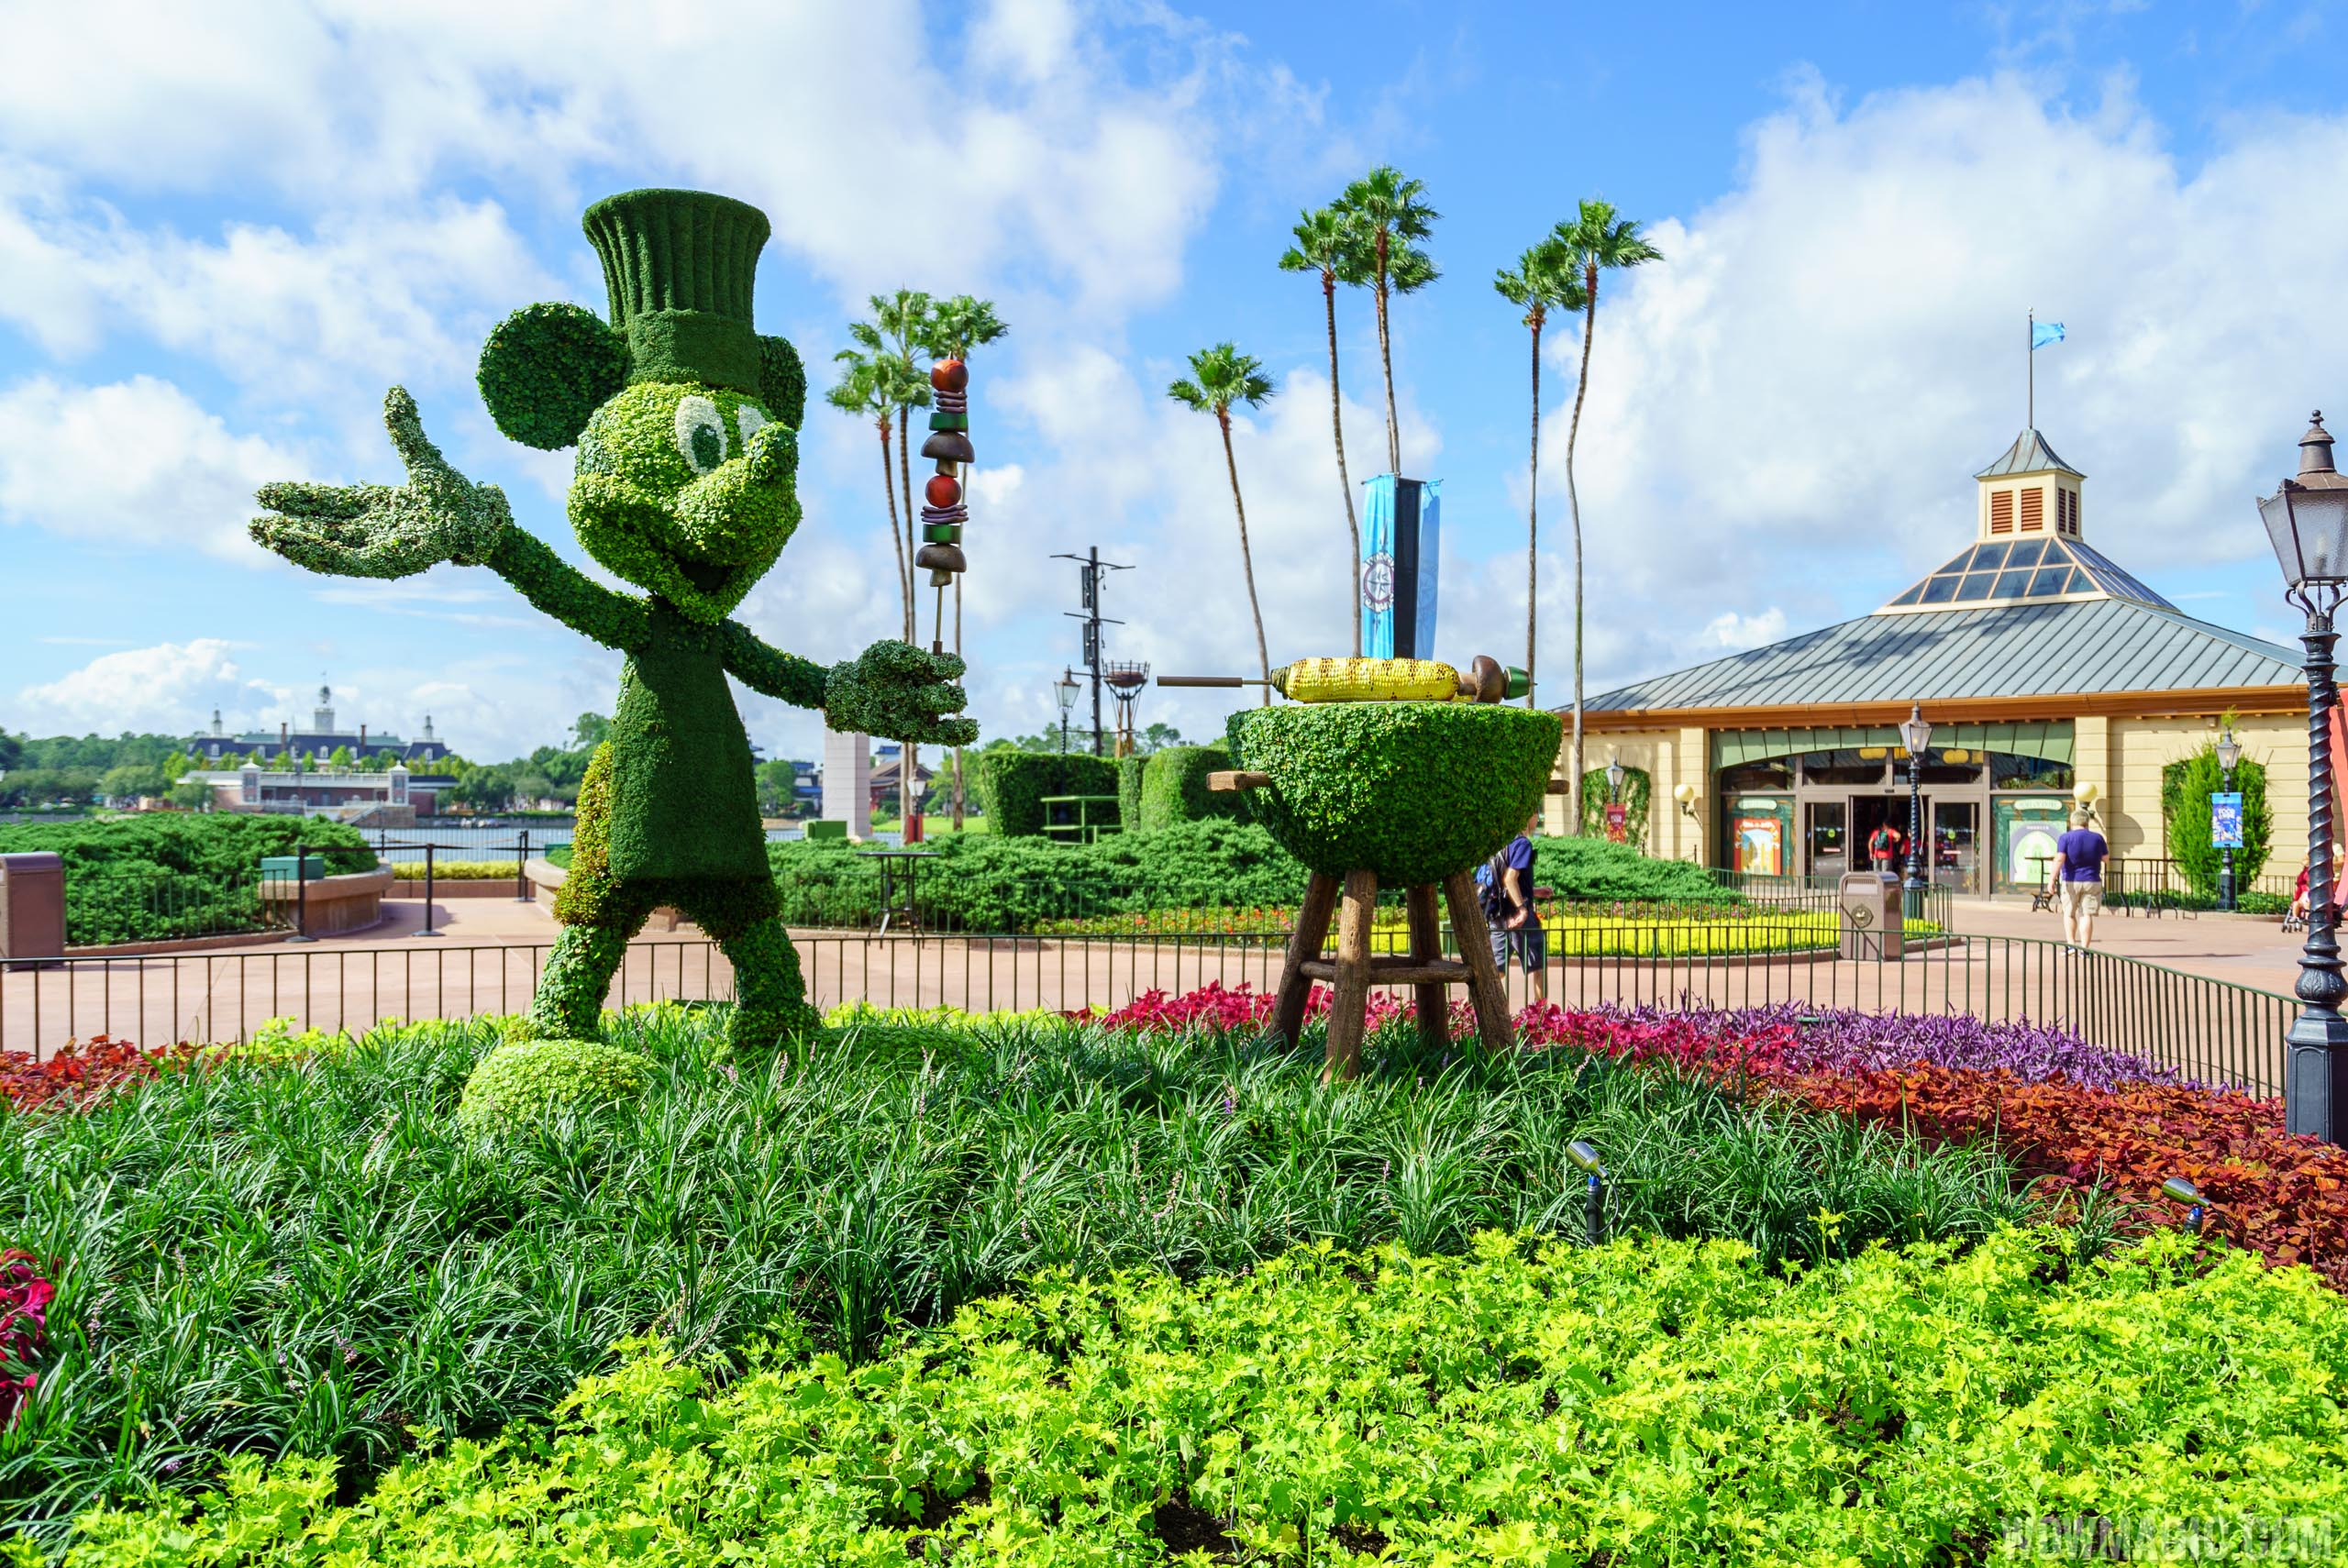 2016 Epcot Food and Wine Festival - Mickey topiary at World Showcase Plaza